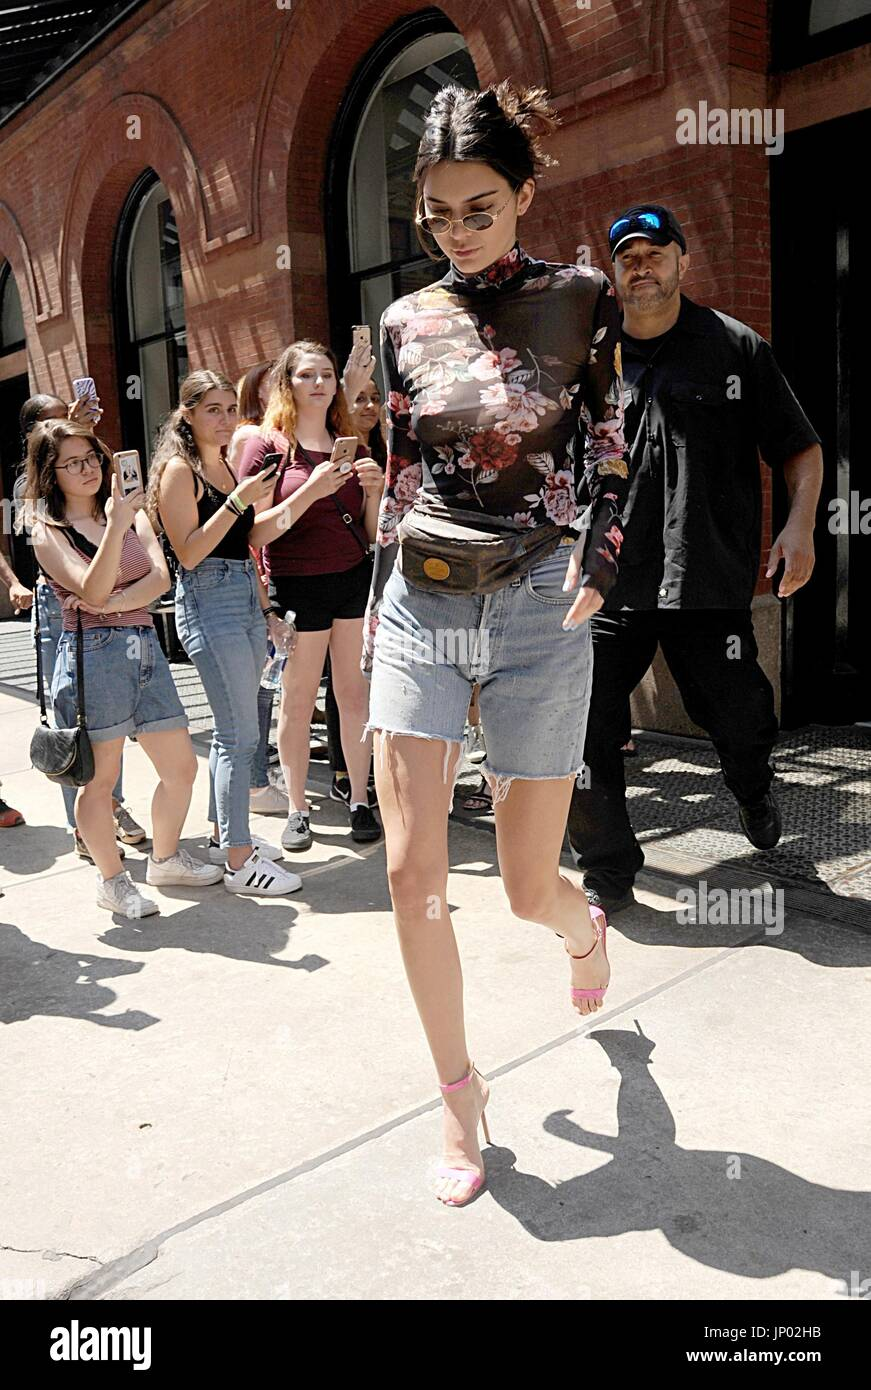 New York, NY, USA. 31st July, 2017. Kendall Jenner out and about for Celebrity Candids - MON, New York, NY July 31, 2017. Credit: Kristin Callahan/Everett Collection/Alamy Live News - Stock Image